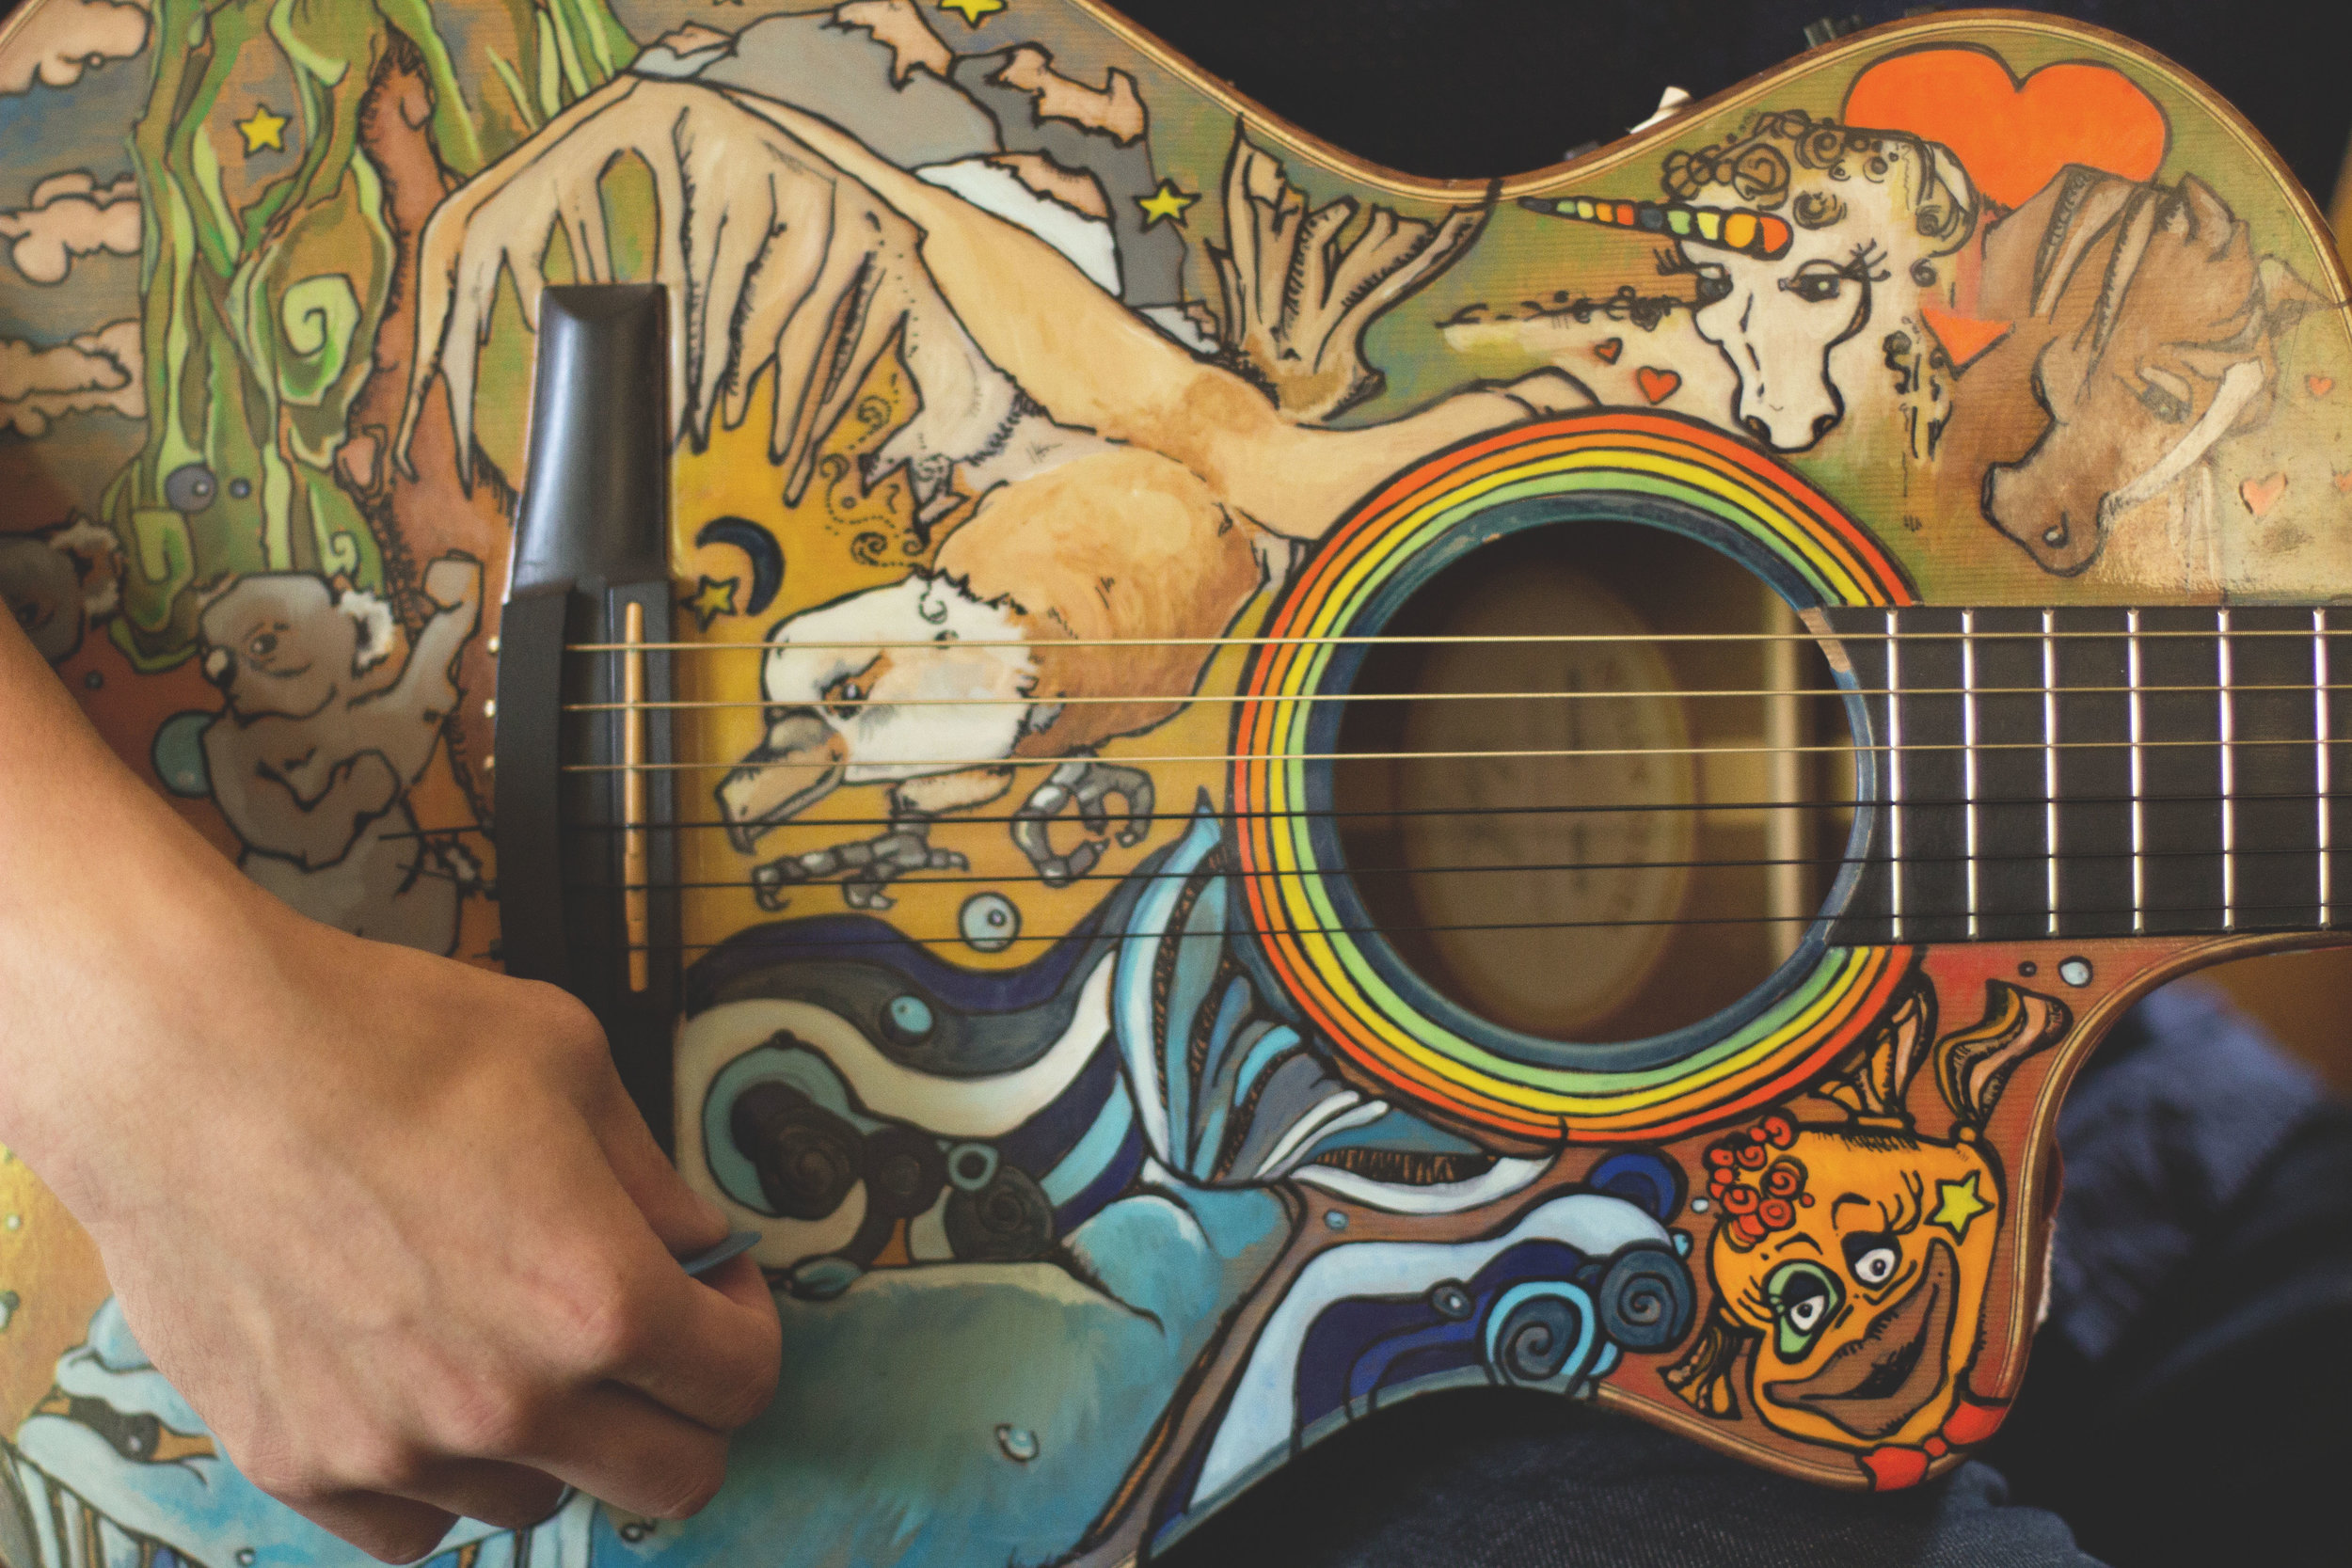 A guitar worth a thousand songs. Painting by Leah Tumerman.